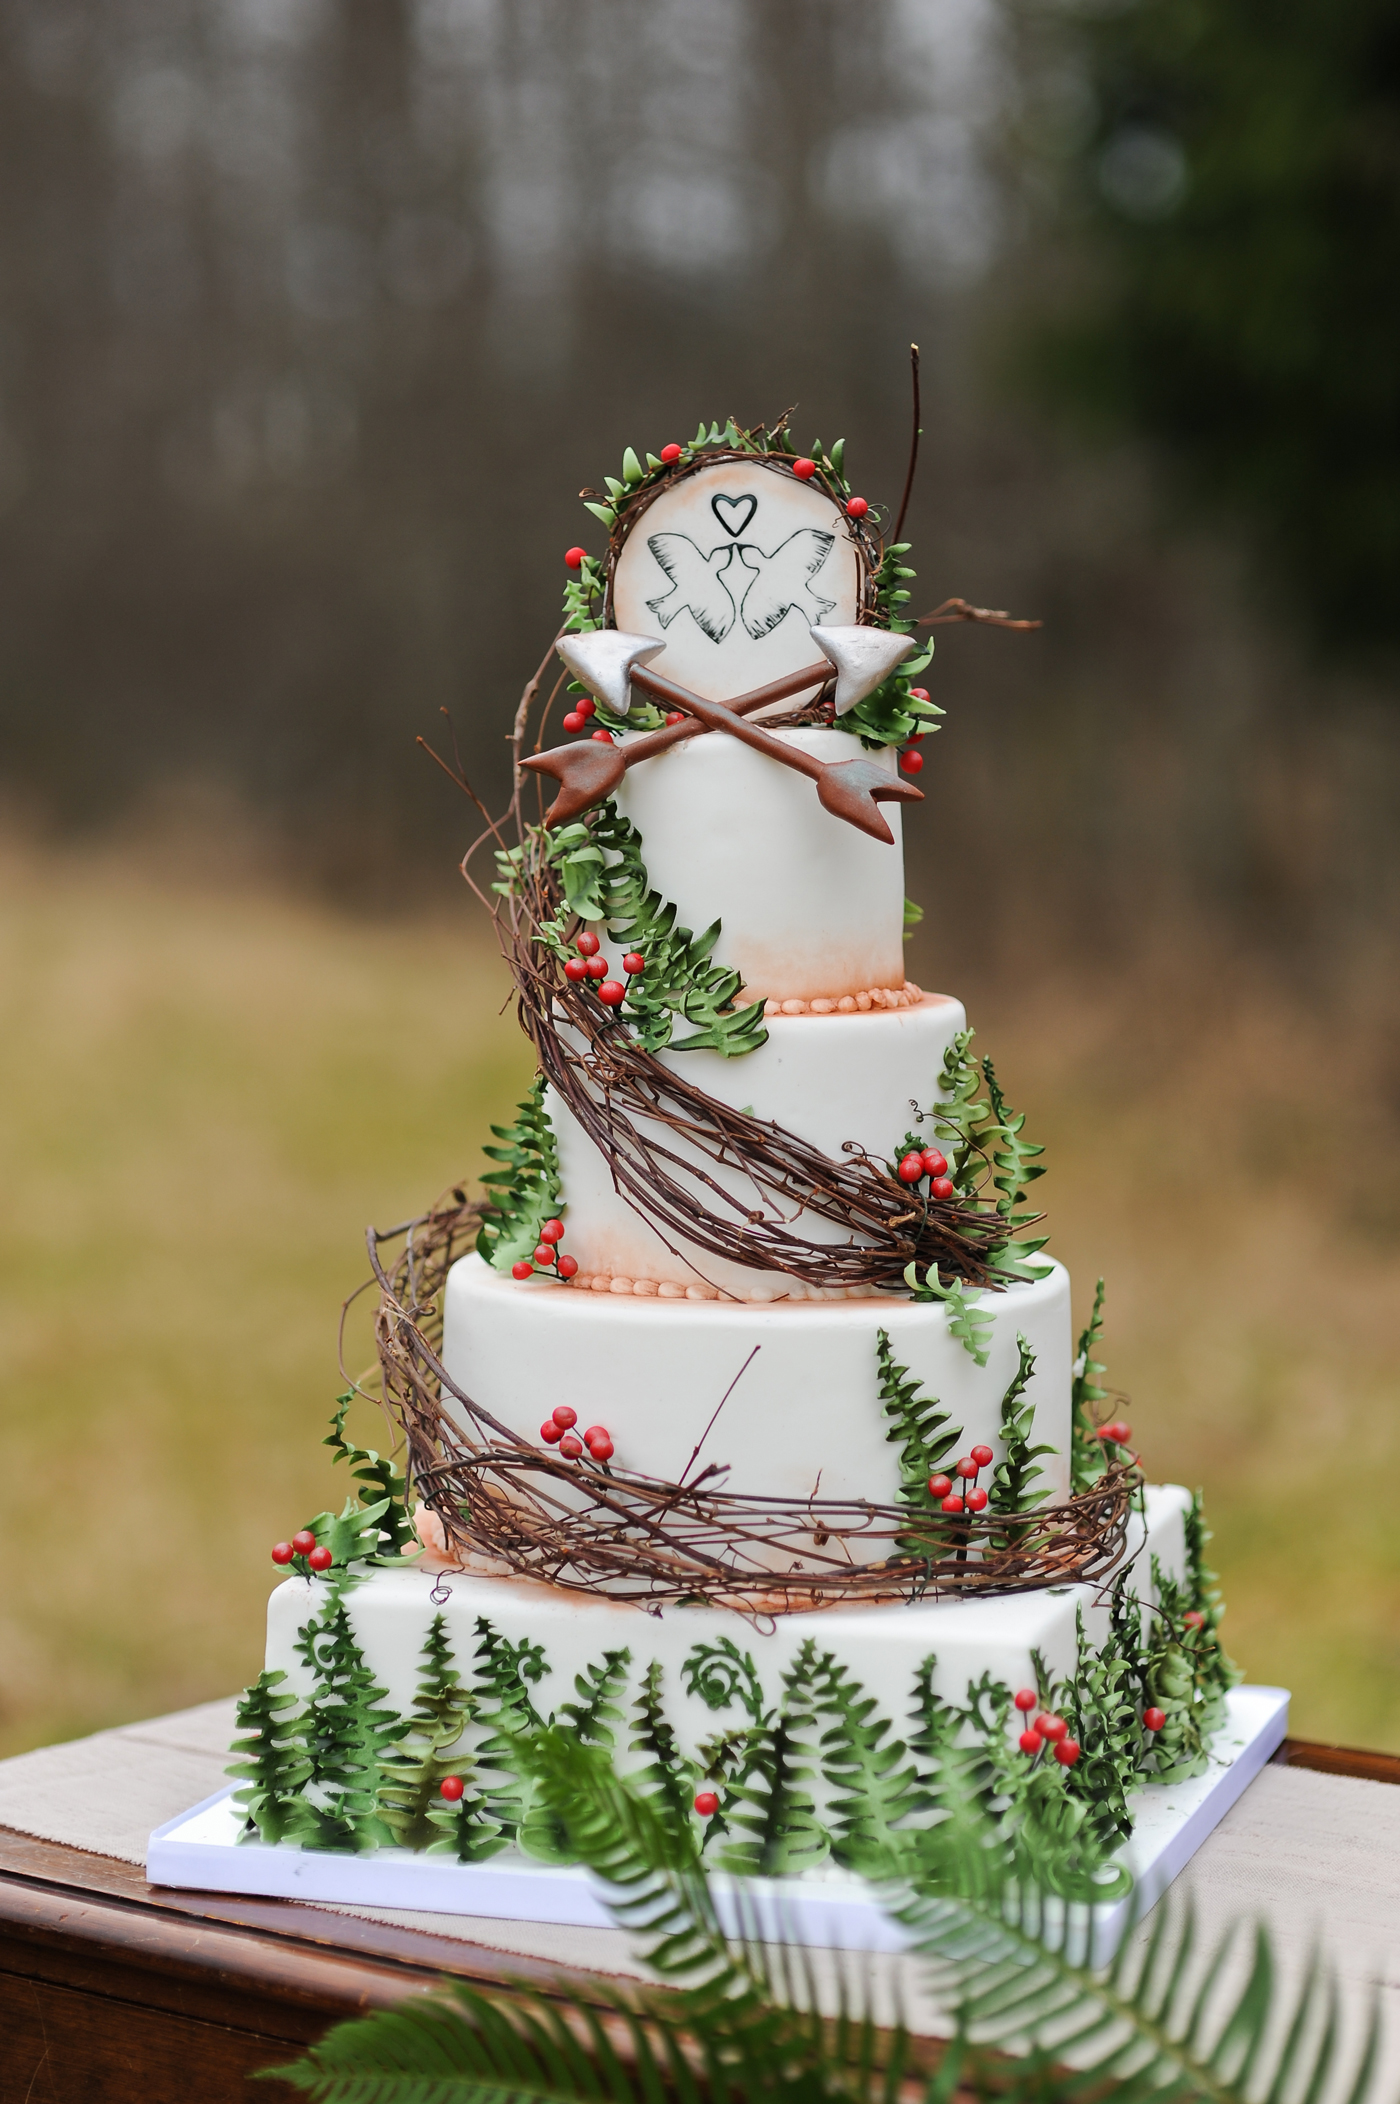 Hunger Games-themed wedding cake